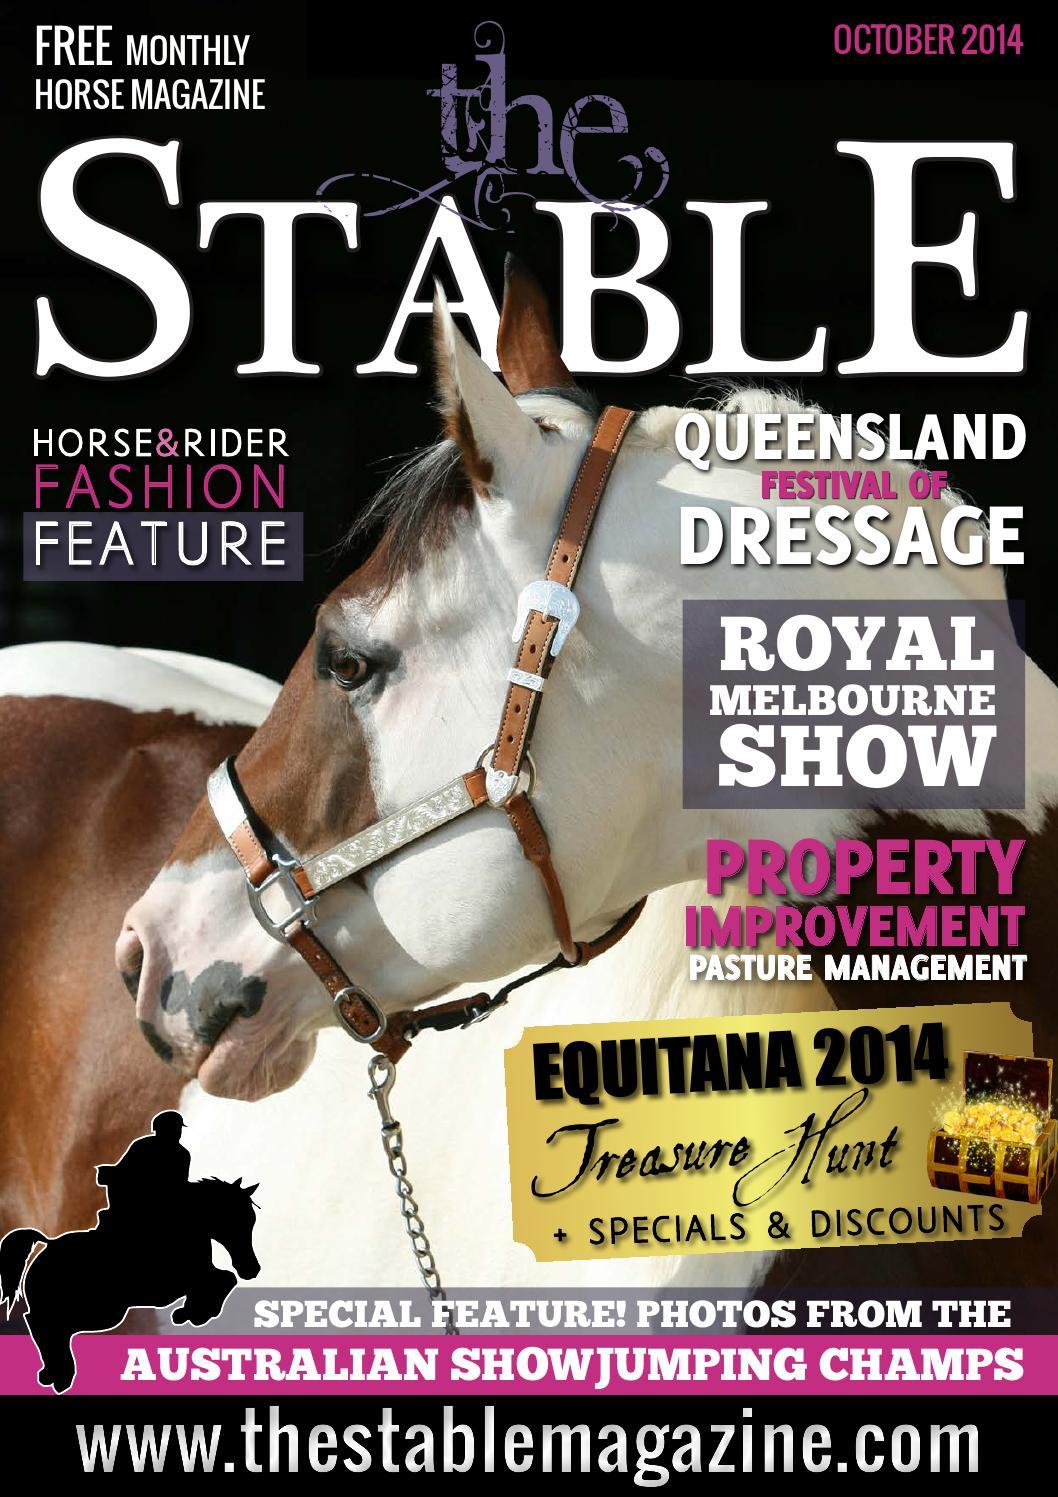 The Stable Magazine October 2014 By Thestablemagazine